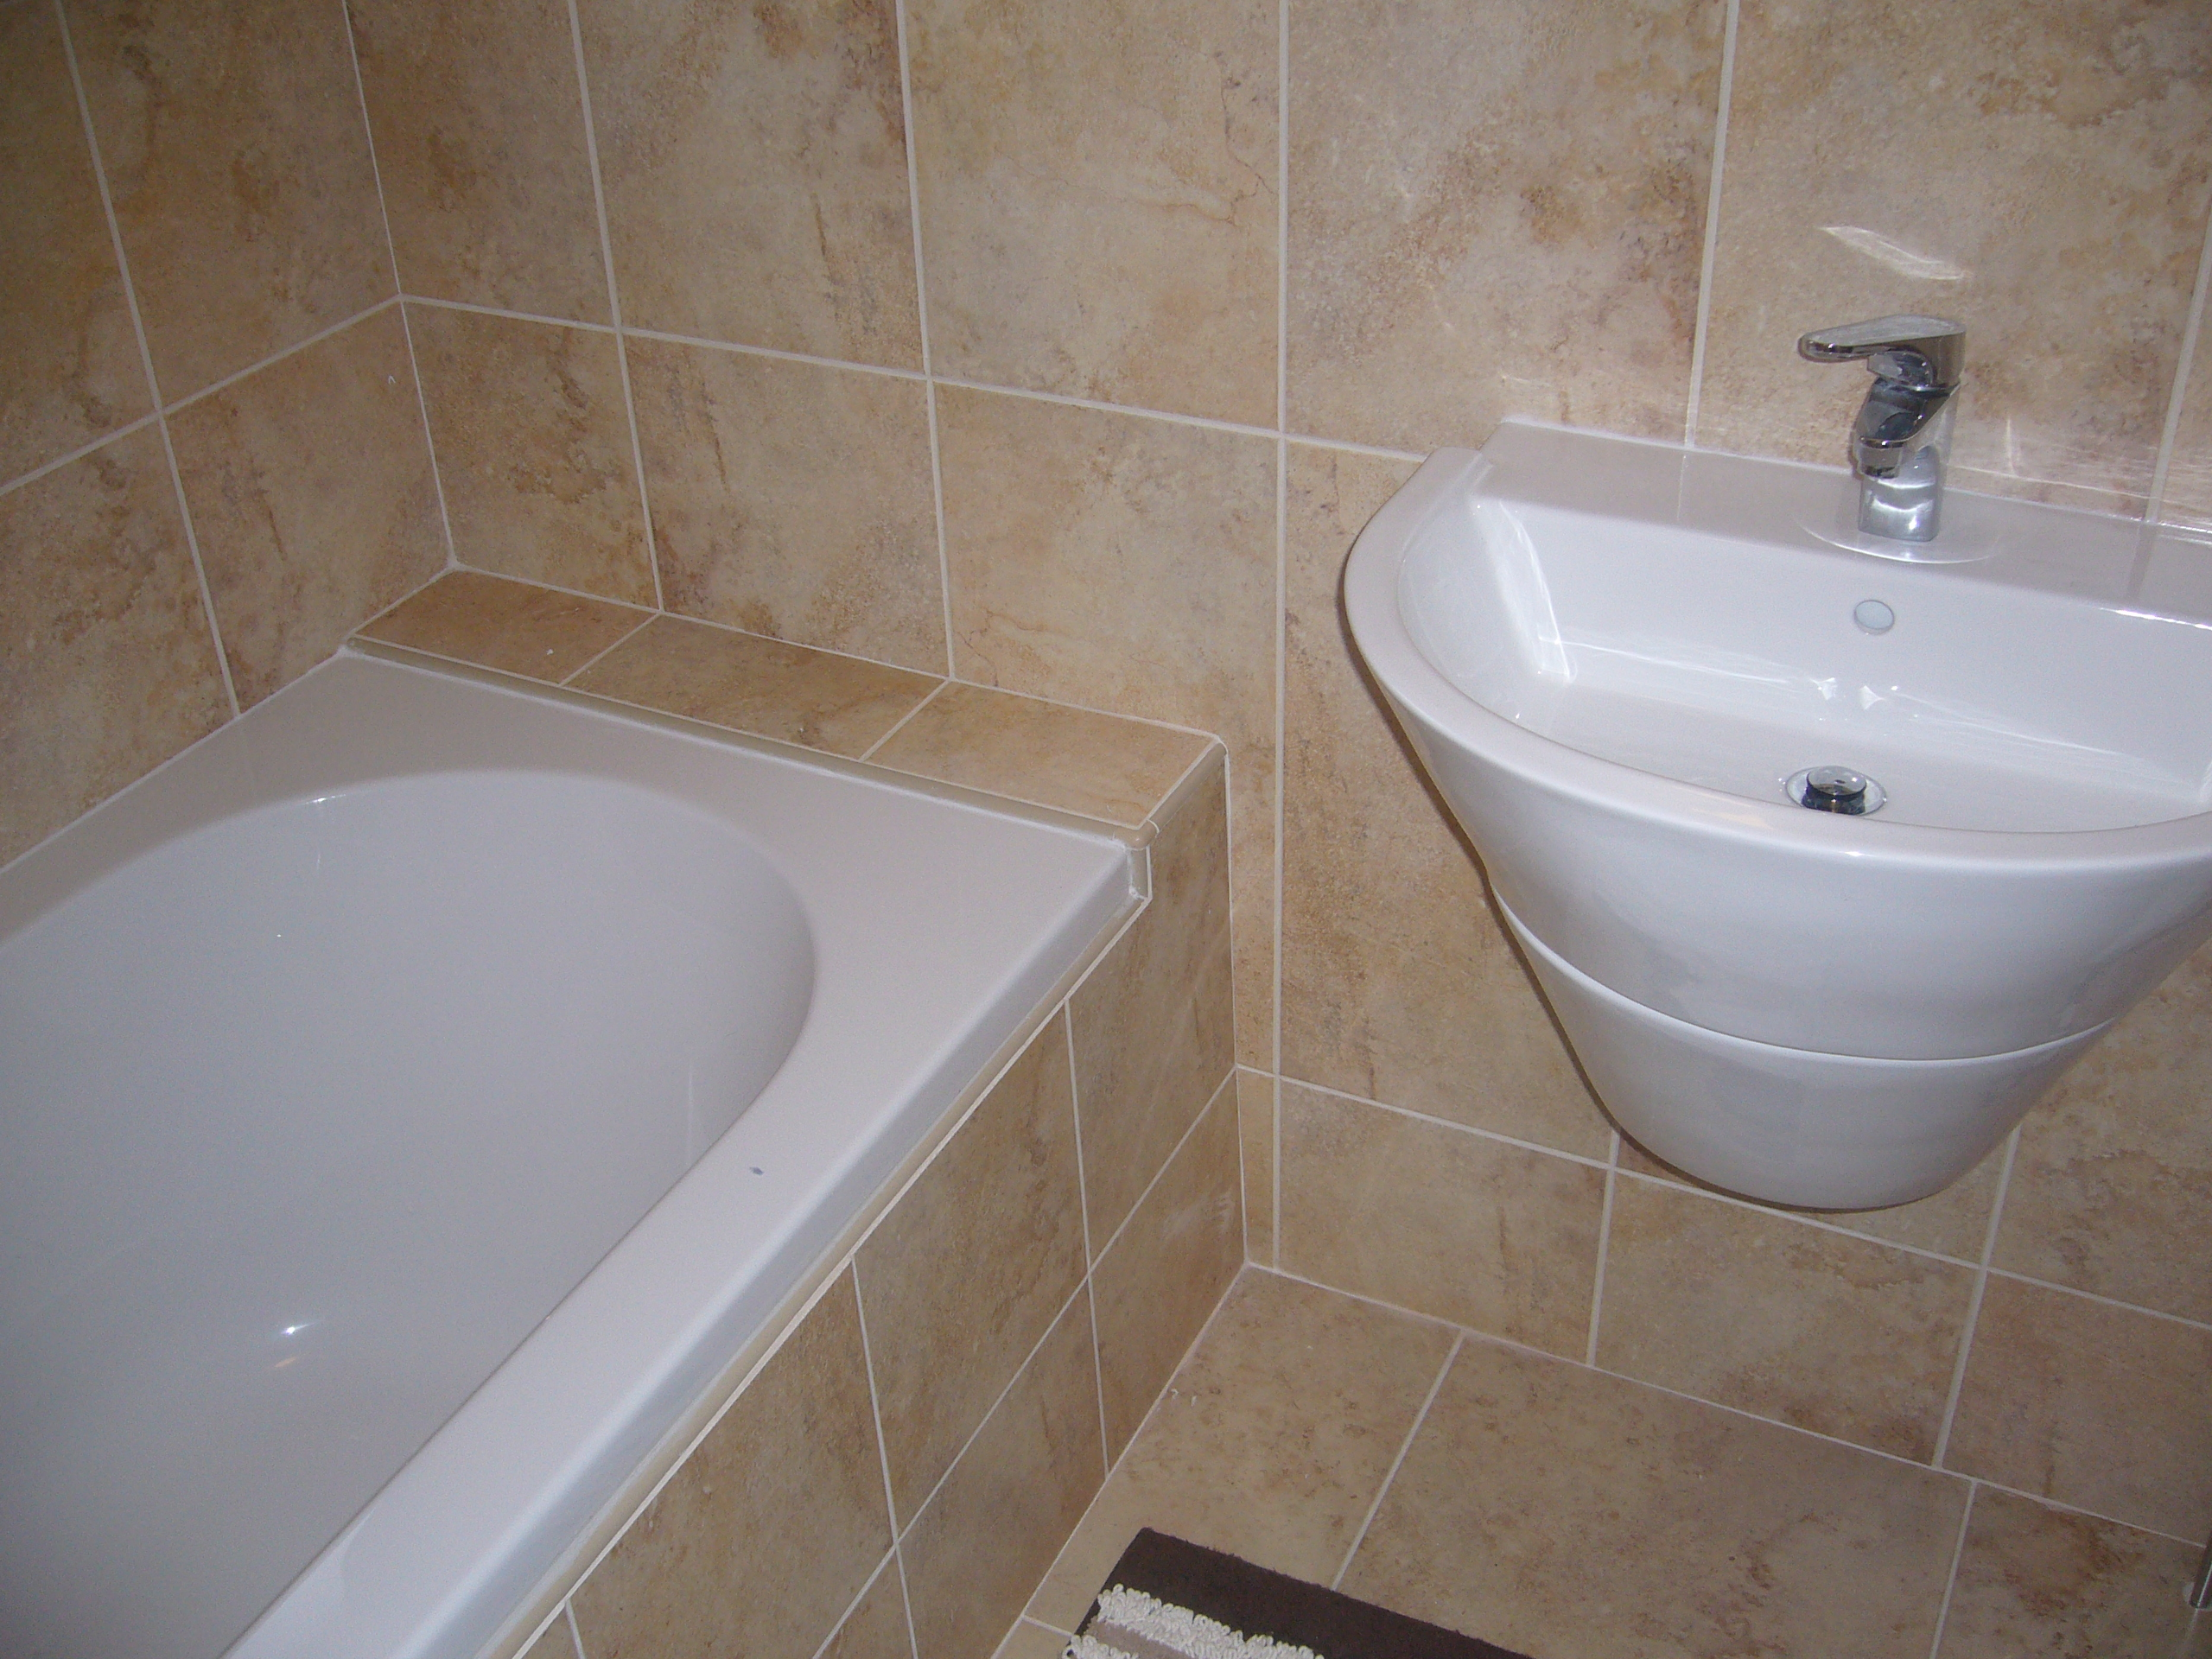 Gallery rivelin plumbing and heating sheffield for Bathroom examples photos